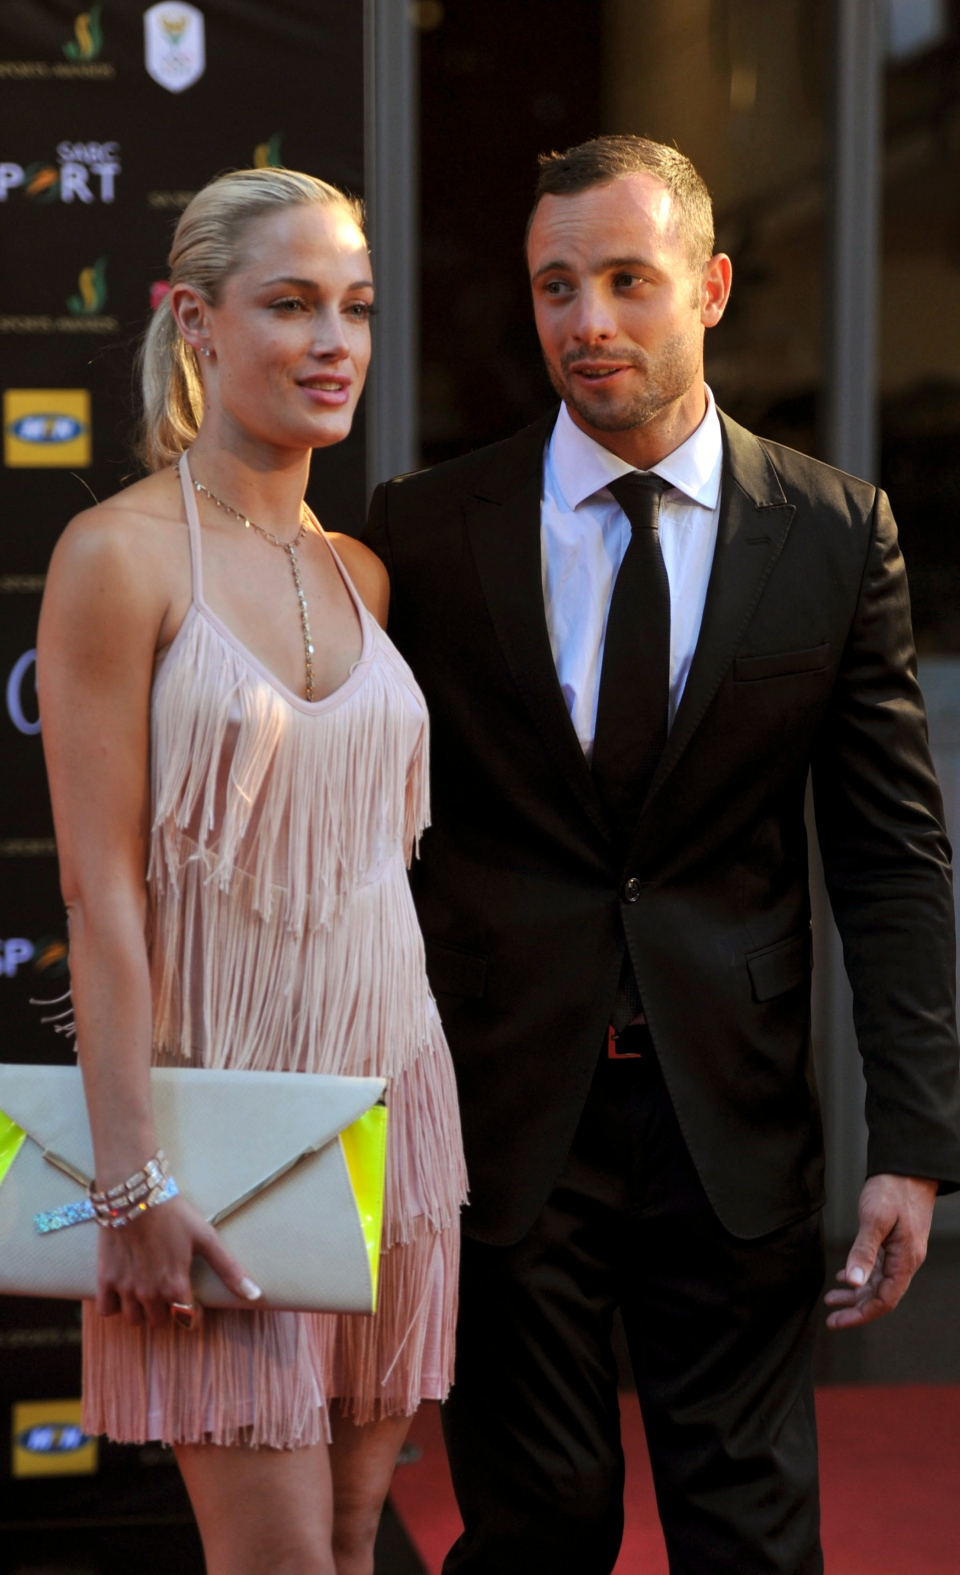 Oscar Pistorius and Reeva Steenkamp at an awards ceremony in Johannesburg, South Africa last year. The Olympic athlete has been charged with the murder of his girlfriend after the model was shot inside the athlete's home. (AP / Lucky Nxumalo-Citypress)